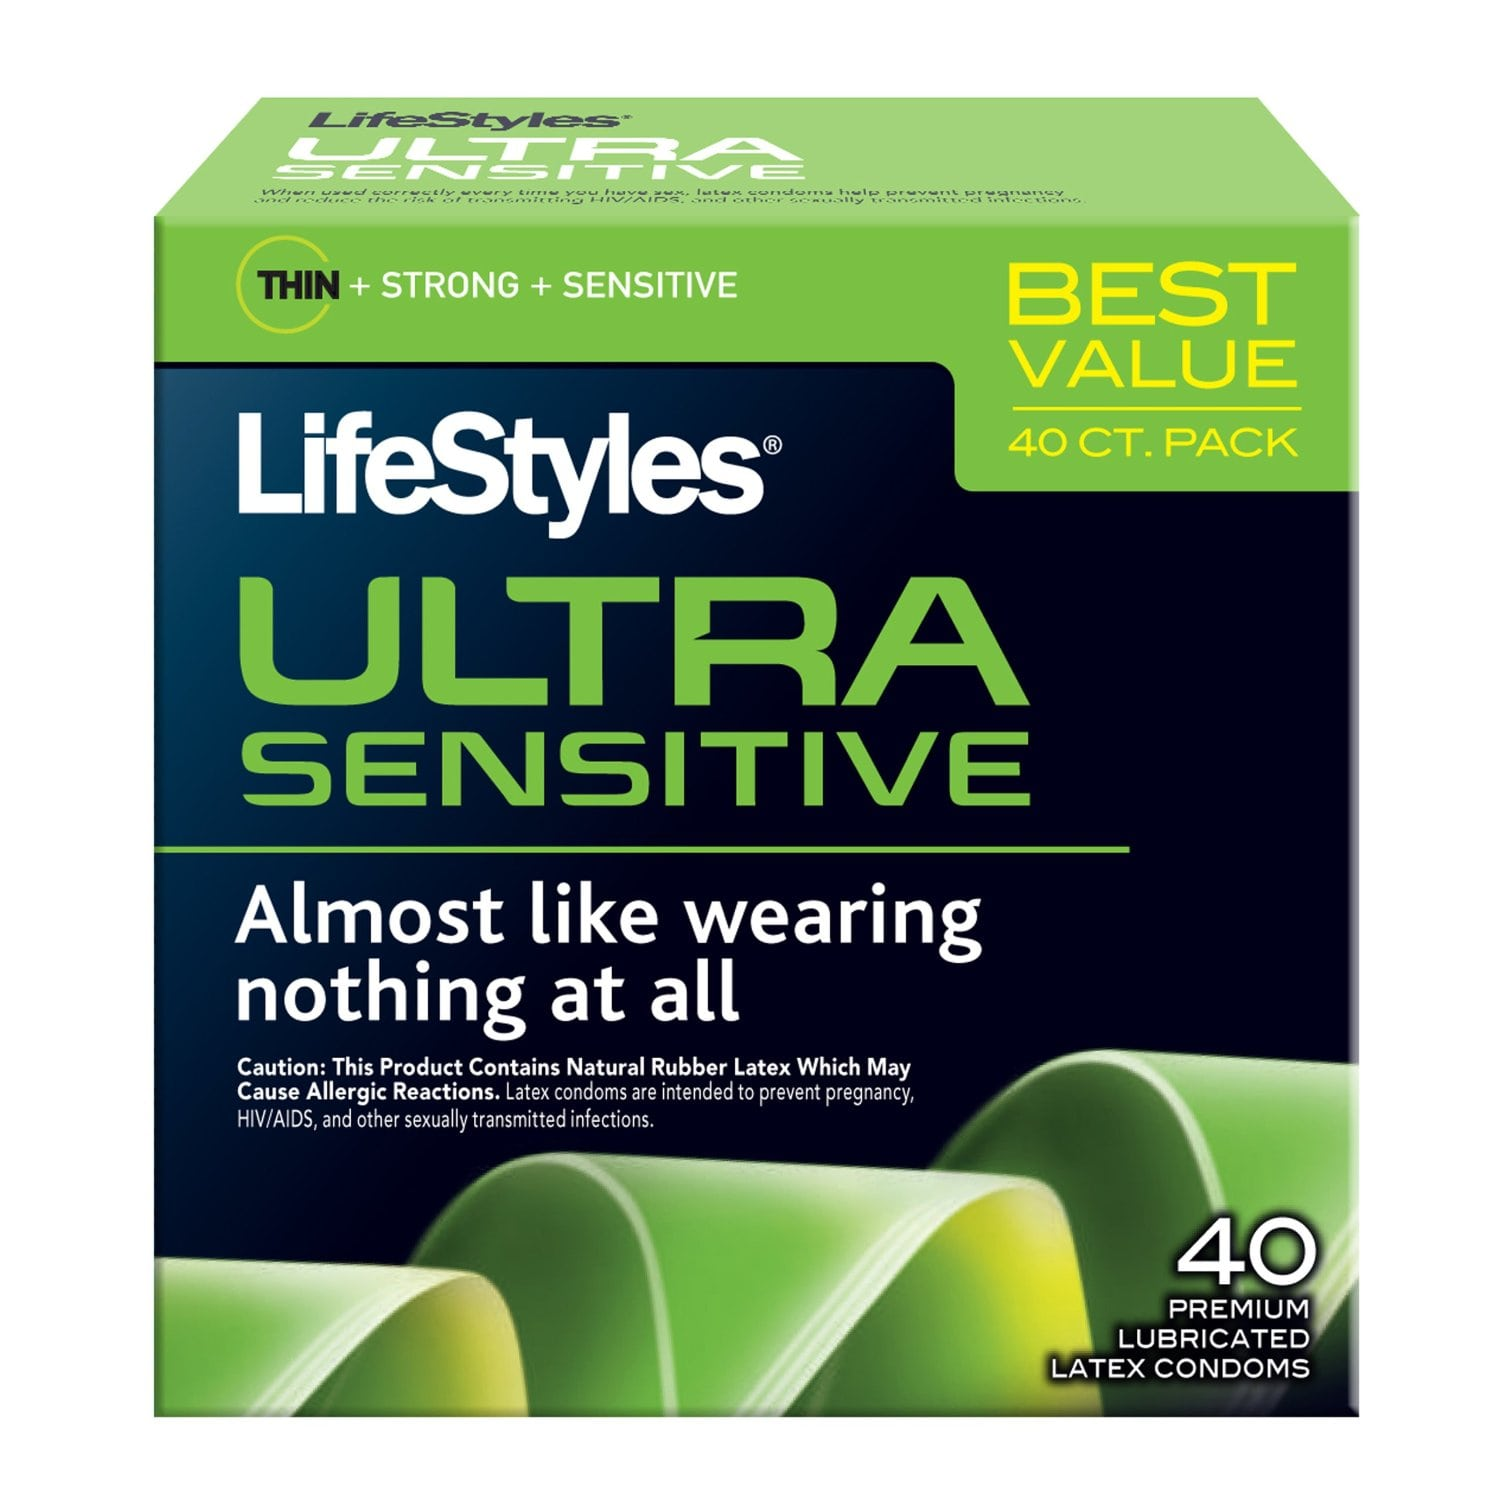 Lifestyles Ultra Sensitive Condoms Review